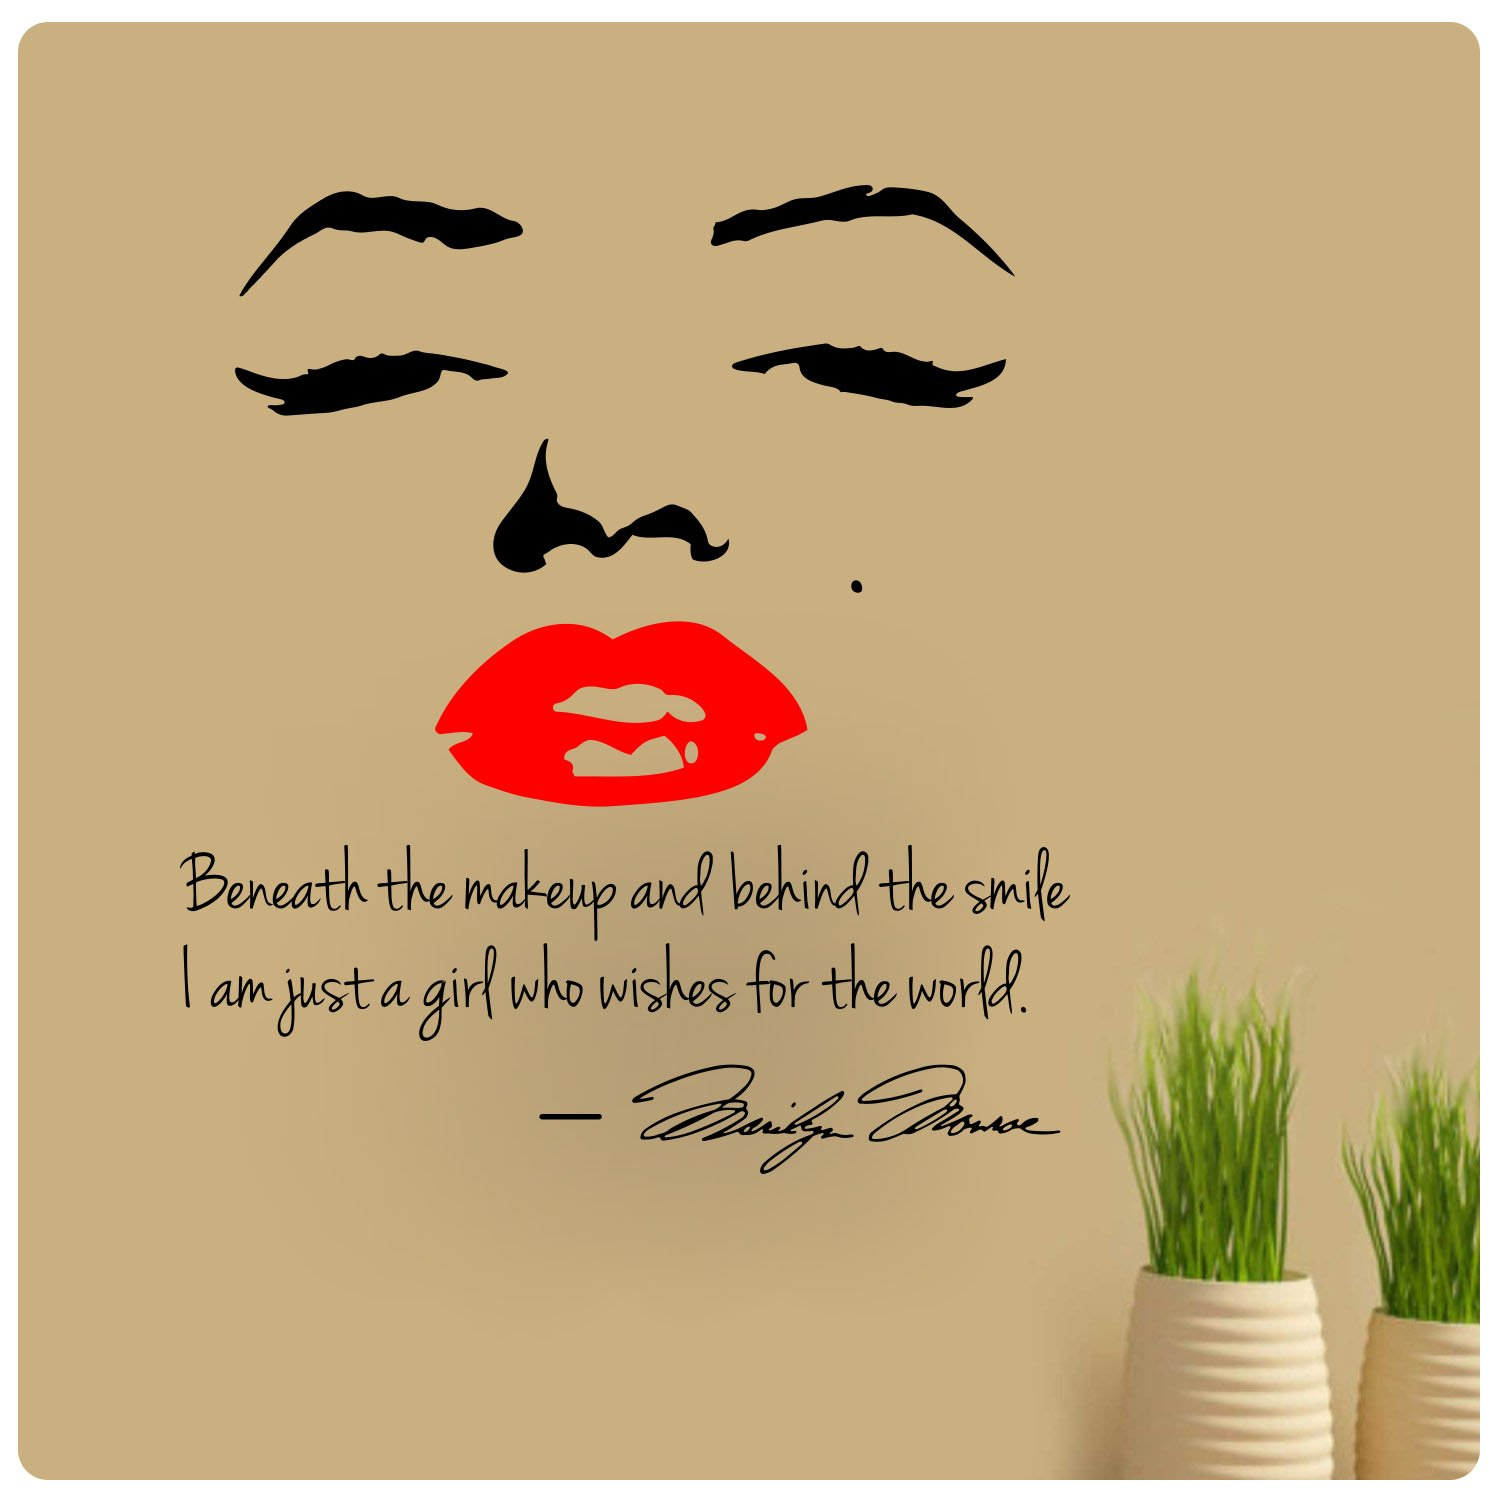 Amazon.com: Marilyn Monroe Red Lips Beneath the Makeup Behind Smile ...